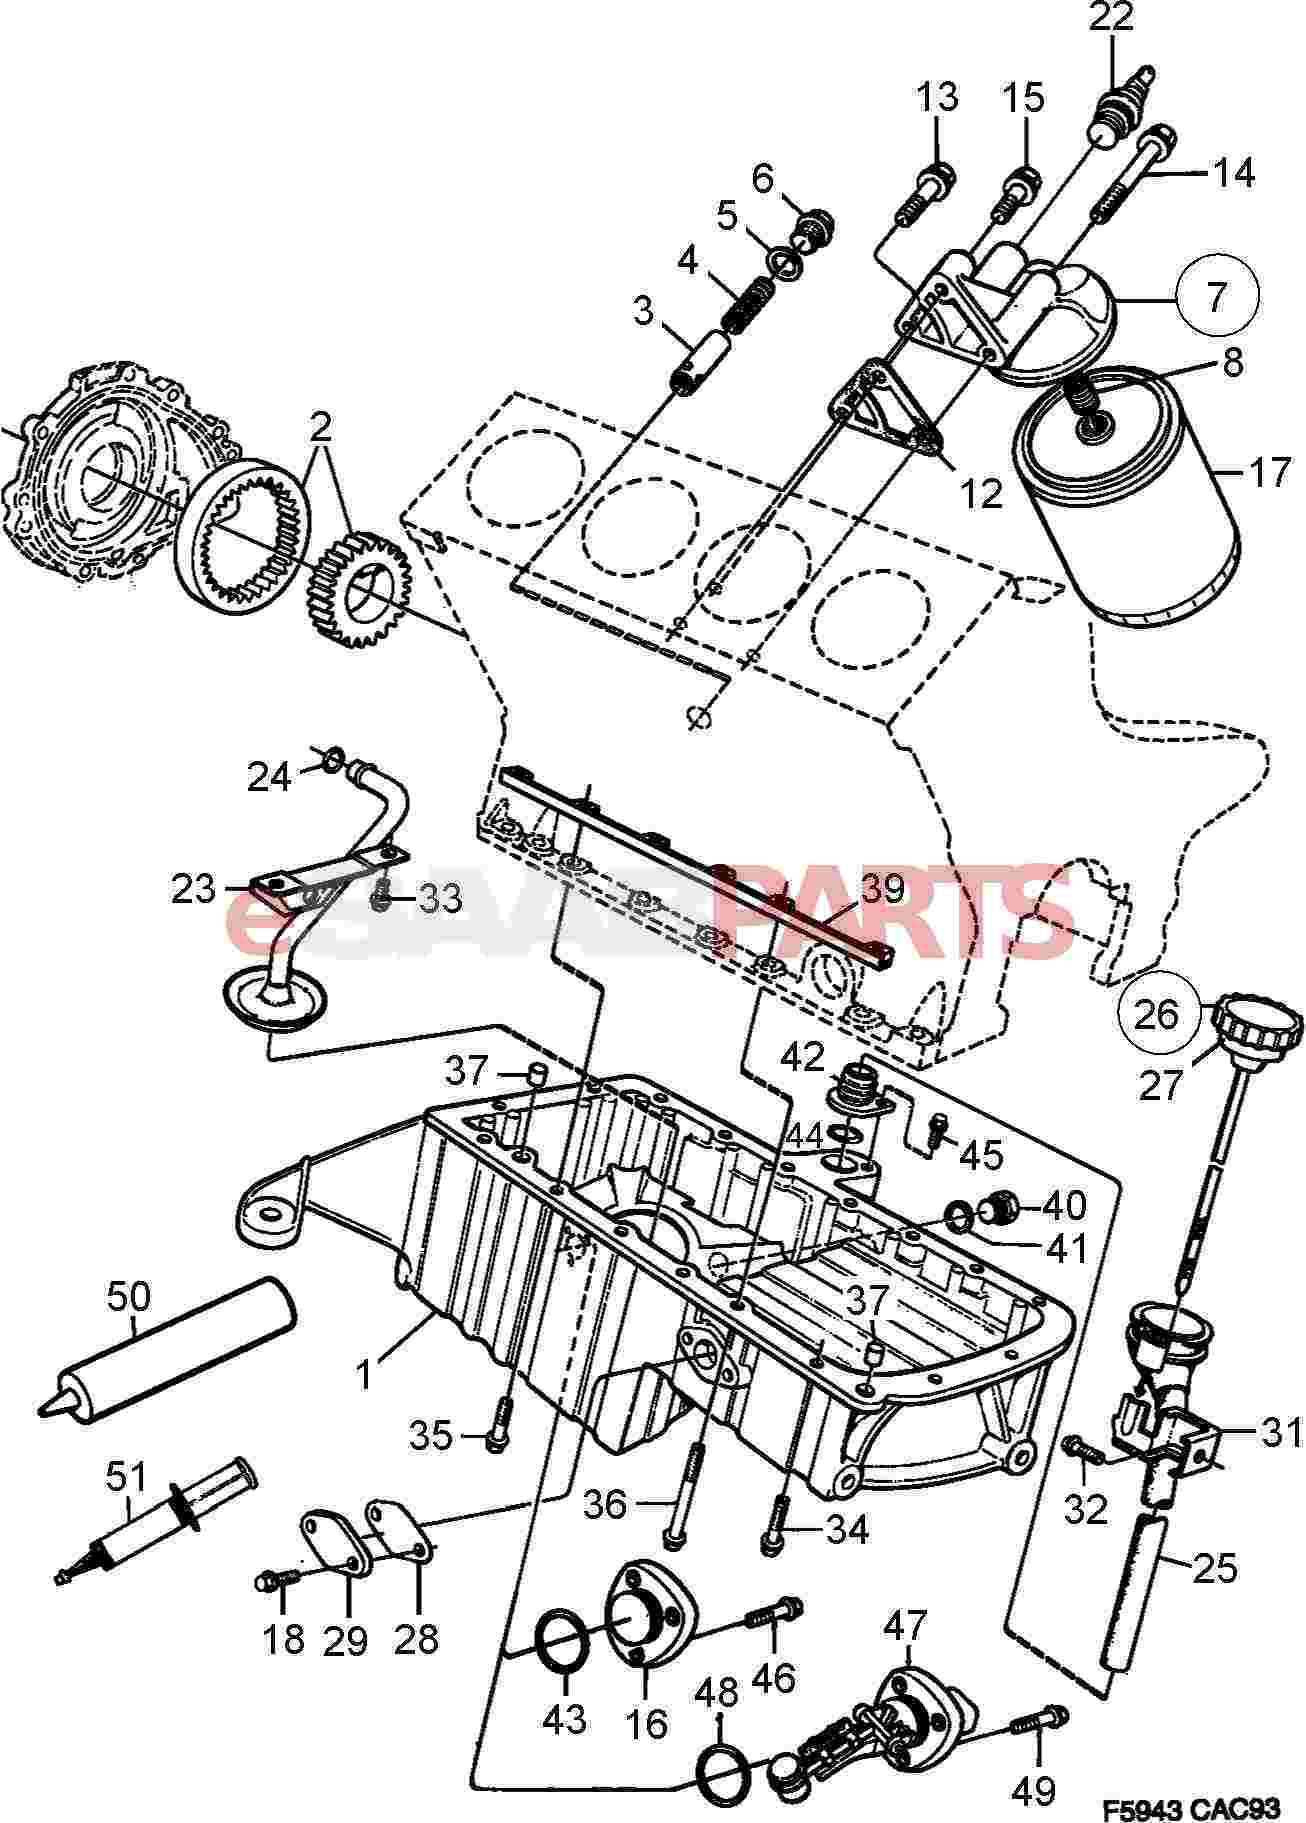 93165267 saab sealing pound genuine saab parts from esaabparts rh esaabparts oil change diagram oil film